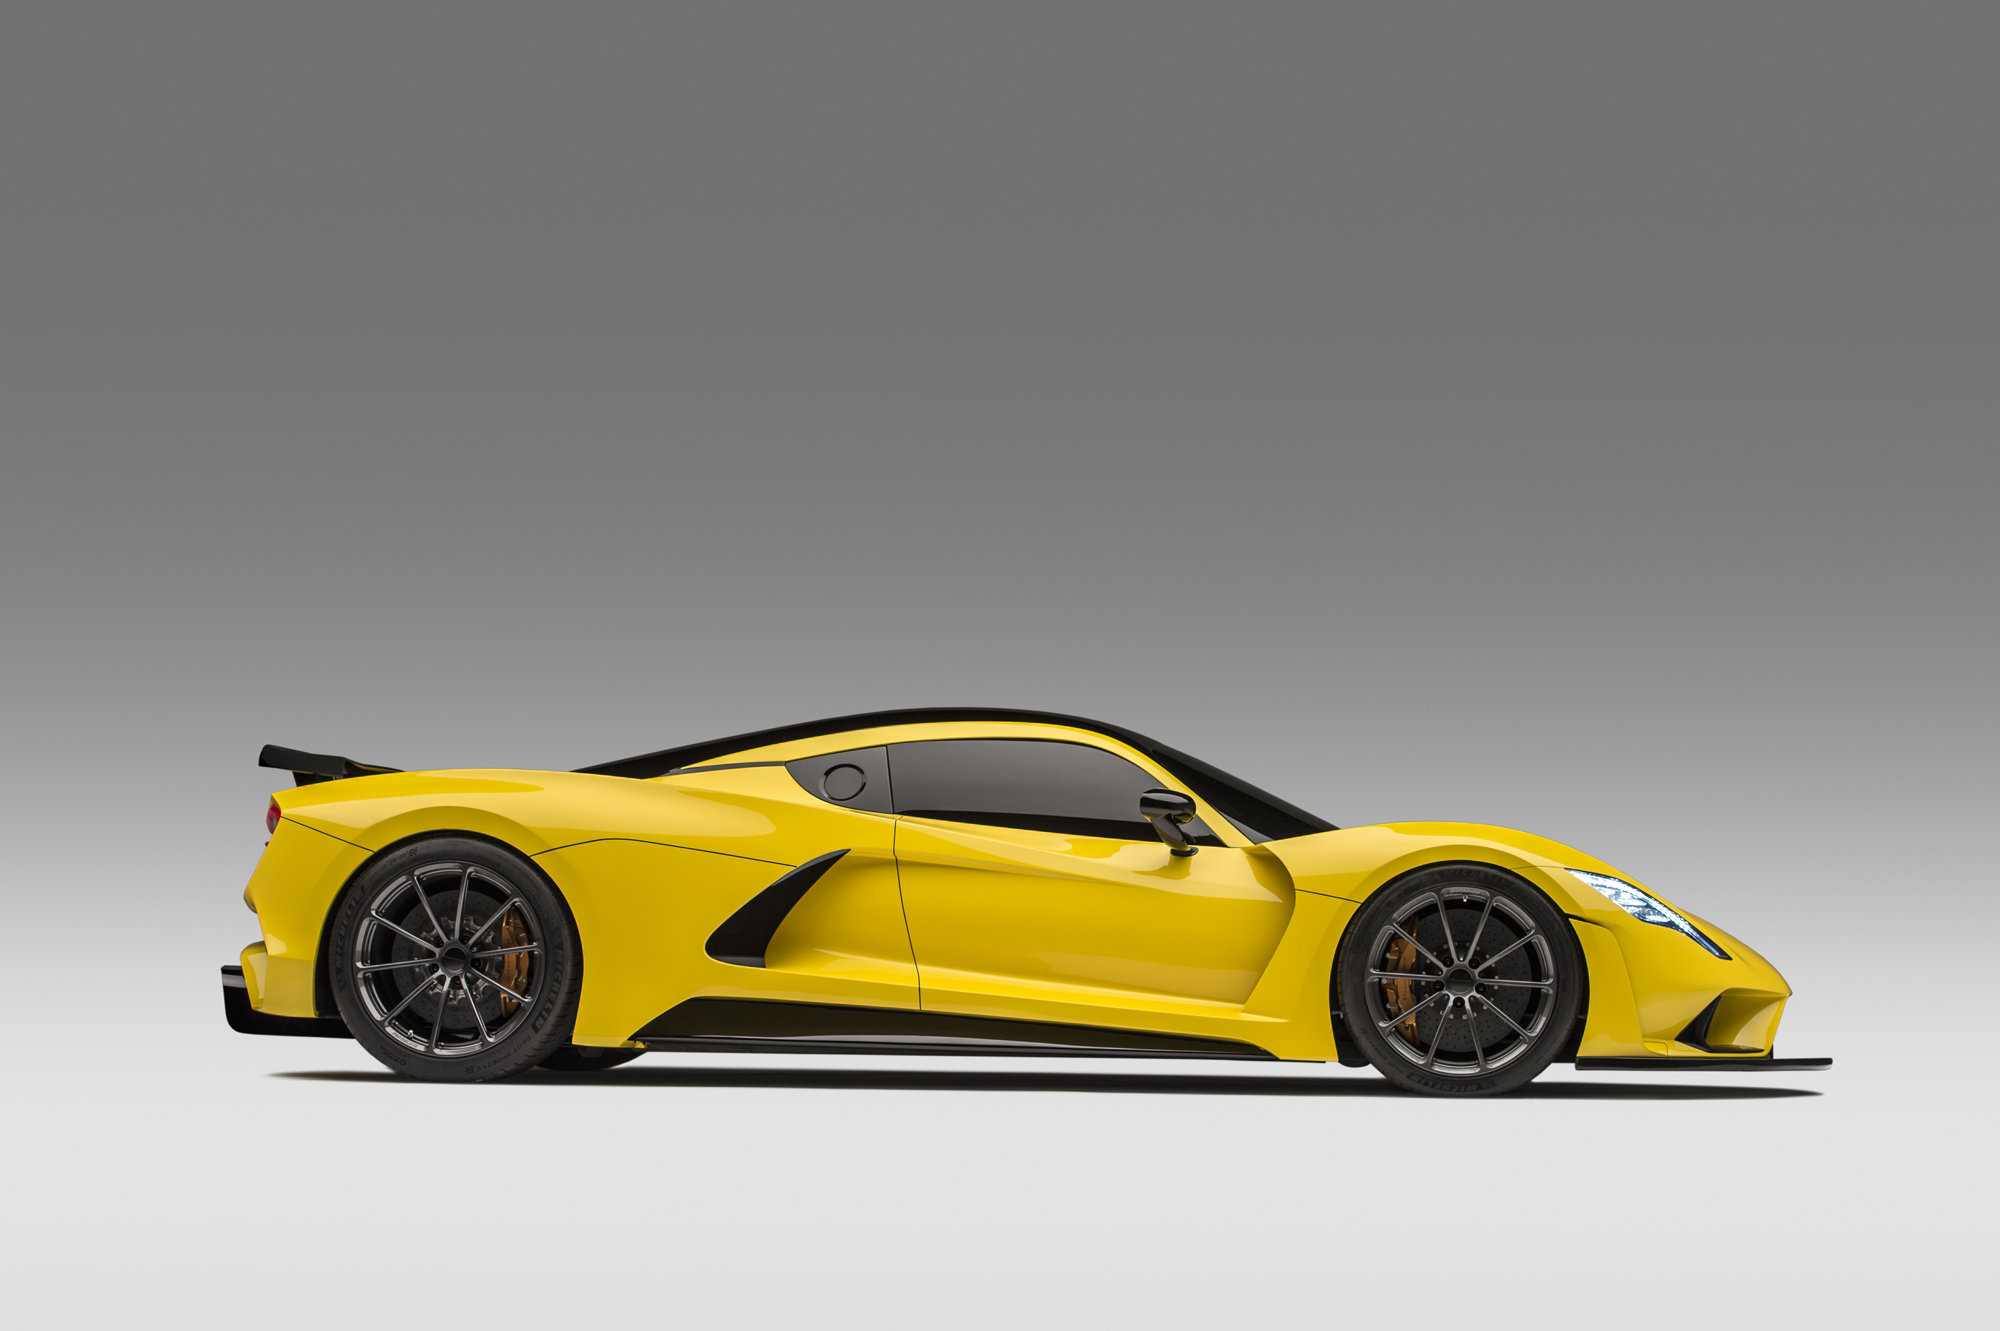 Hennessey Venom F5 Side View Photo